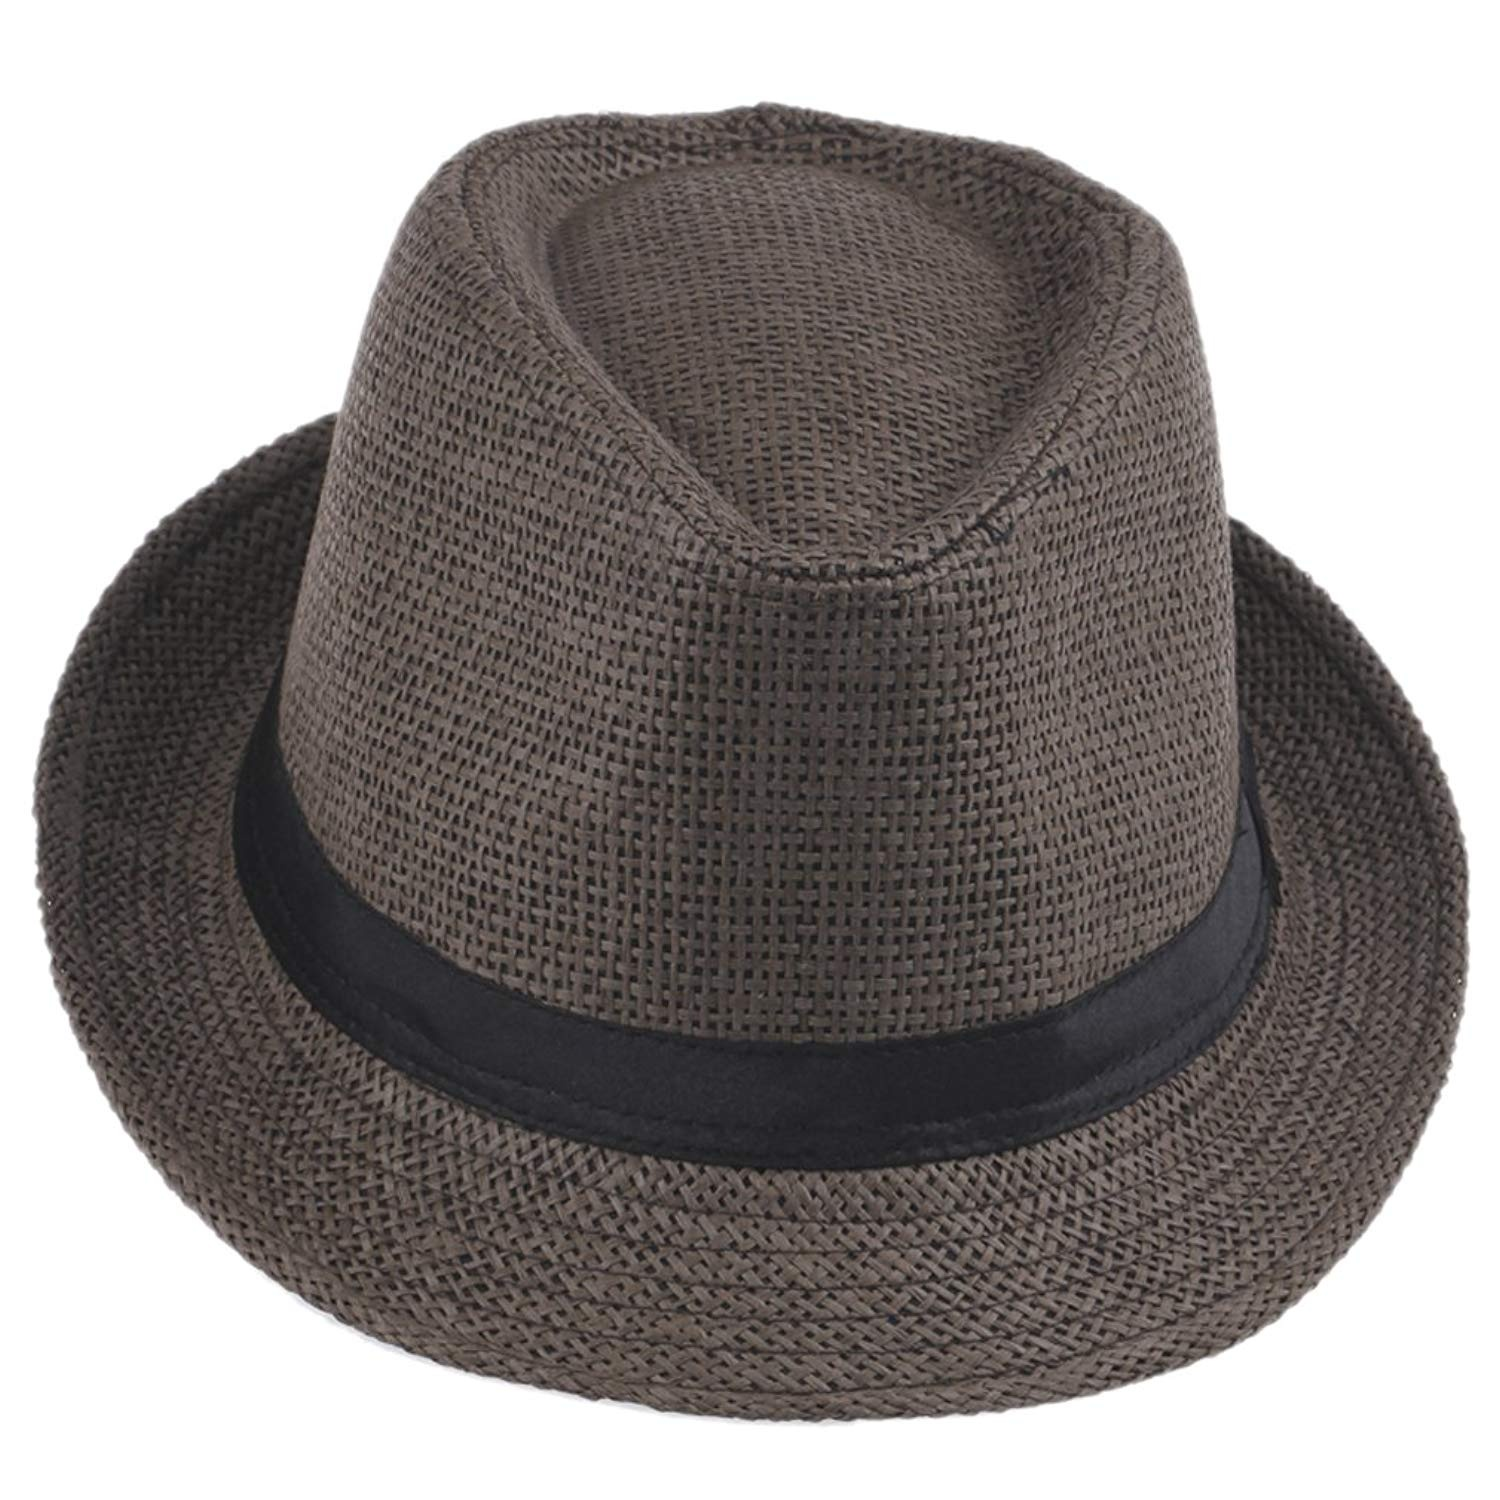 43d97a91574 Kids Fedora Hats Toys  Buy Online from Fishpond.co.nz